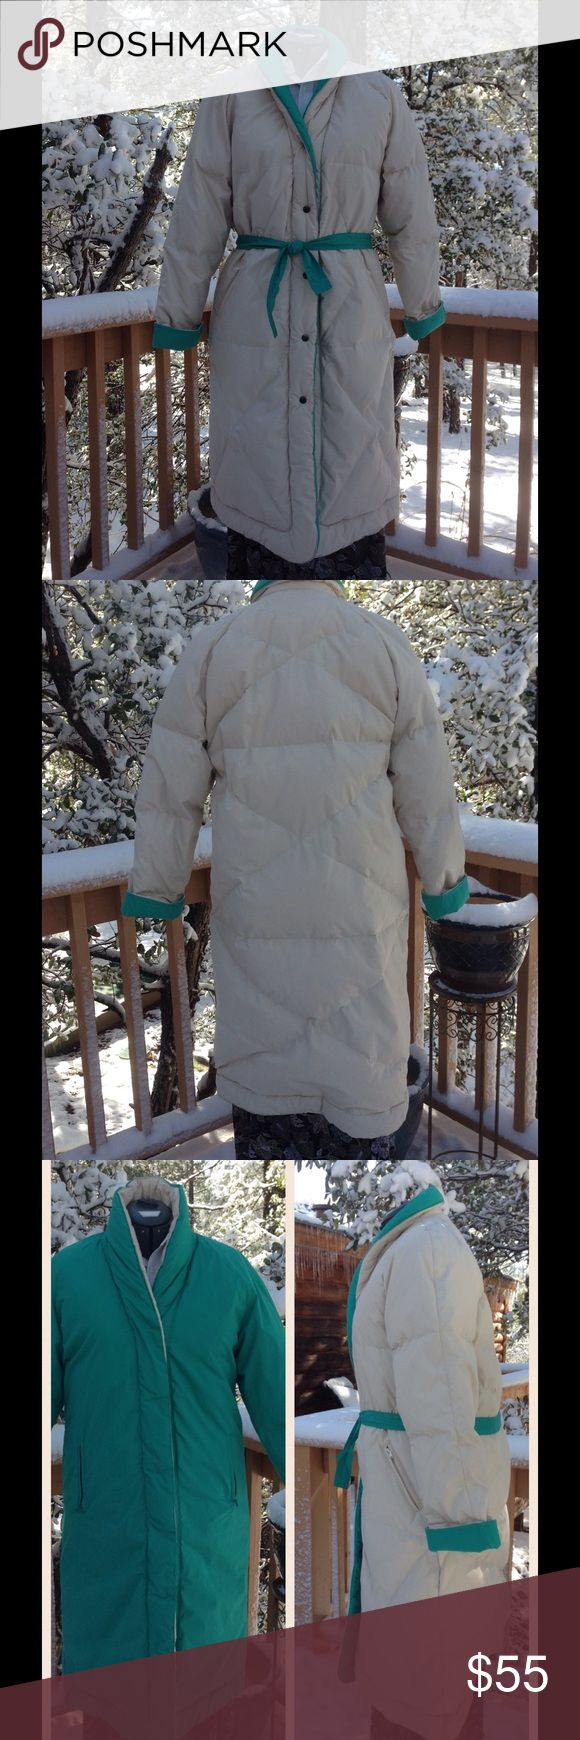 Saxton Hall Coat This coat is poly/cotton, with a fill of 80% down, and 20% waterfowl feathers. Totally reversible, off white on one side, green on the other. Two coats in one! There is a green fabric belt, so it can be worn with or without. It has shawl type roll collar, and zip pockets on each side. The only flaws are a smudge on the off white side at the top of the collar, faint pen mark on left sleeve, and a black smudge on green side of right cuff. I do not have a washing machine big…